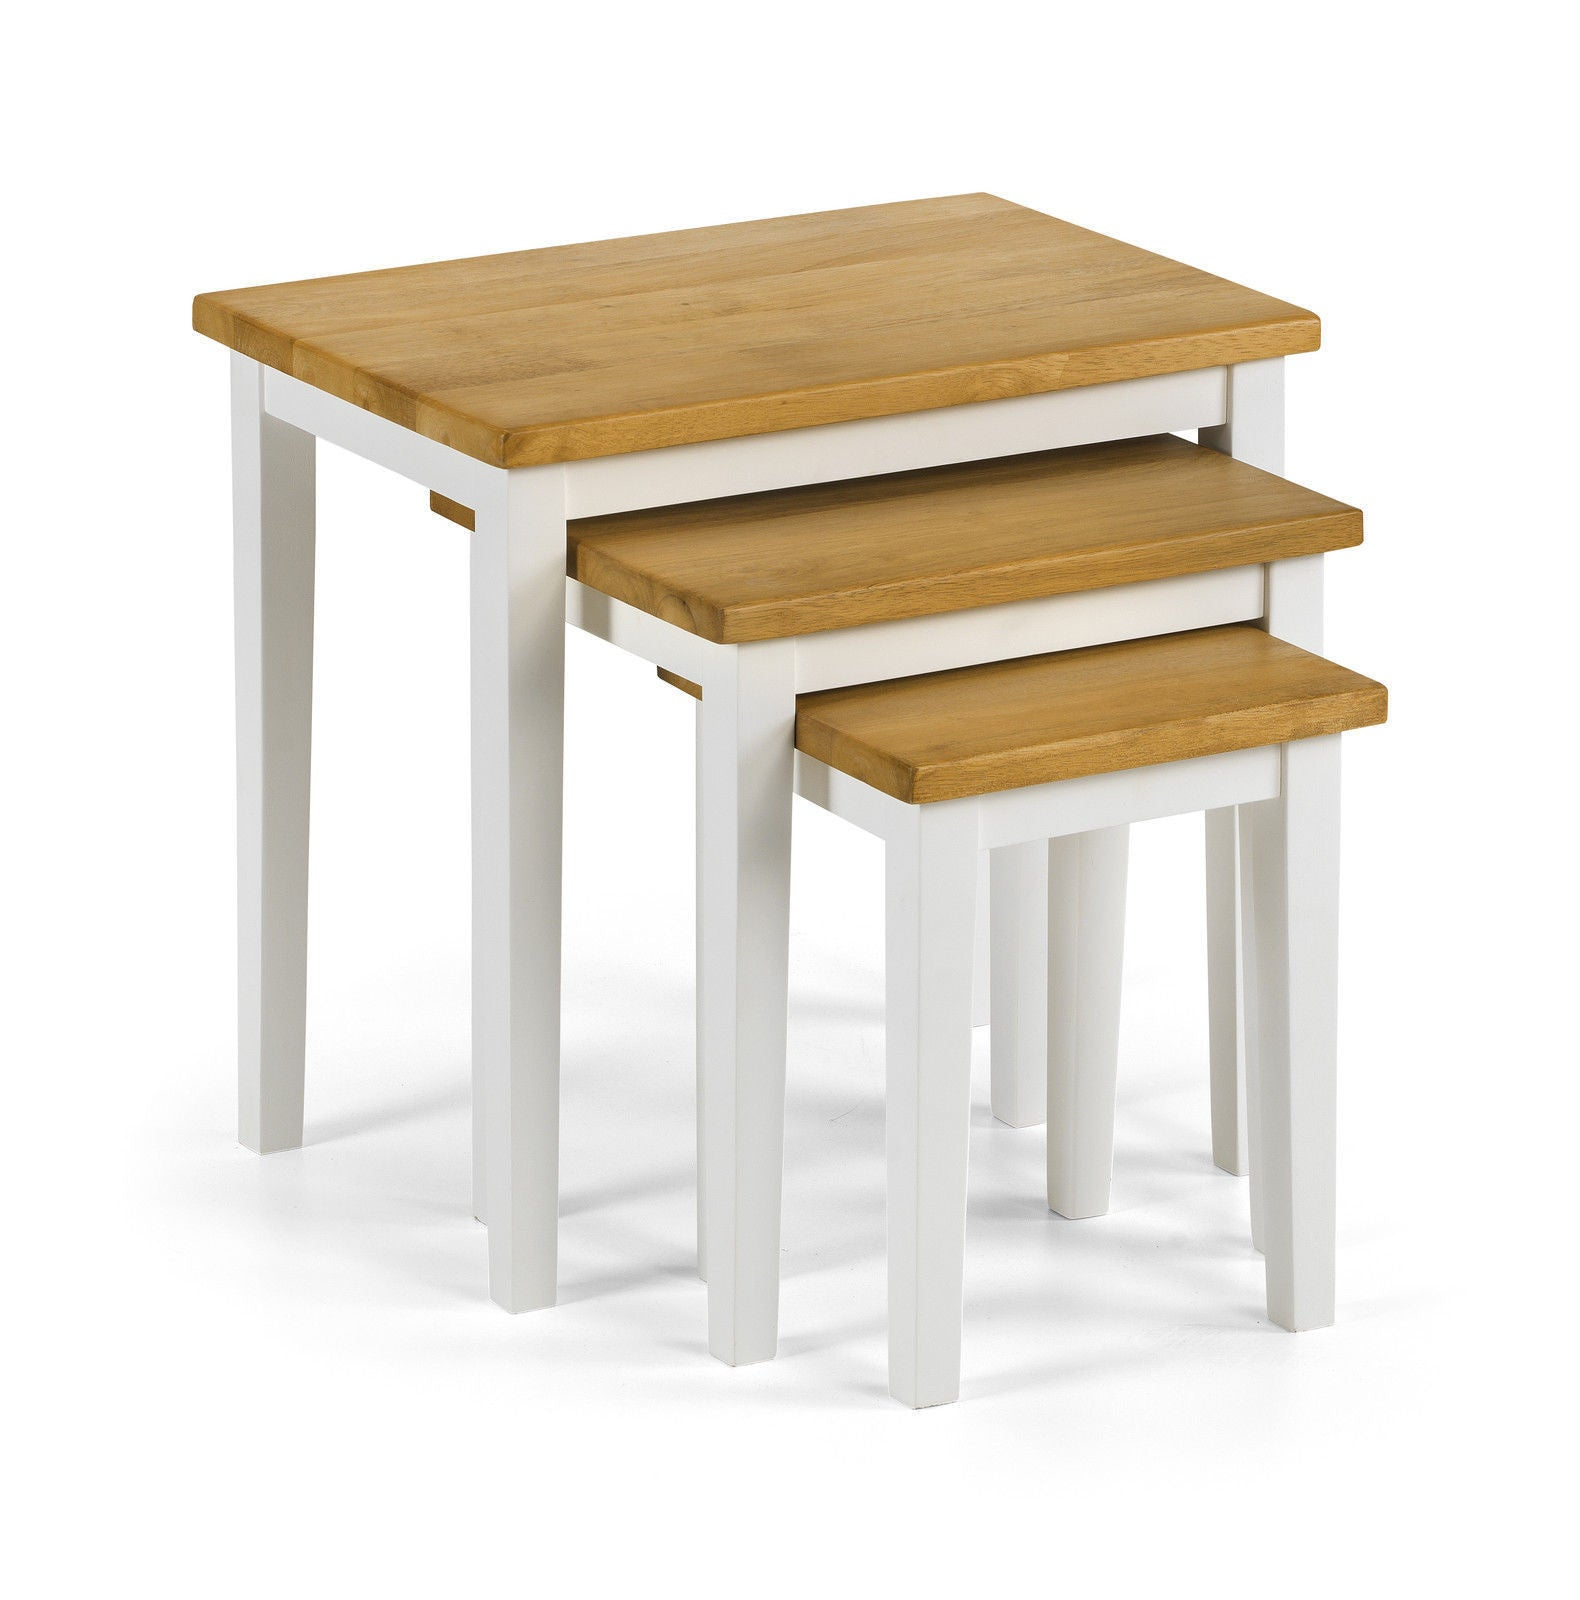 Julian Bowen Cleo Oak And White Nest of Tables Solid Rubber-wood - ImagineX Furniture & Interiors